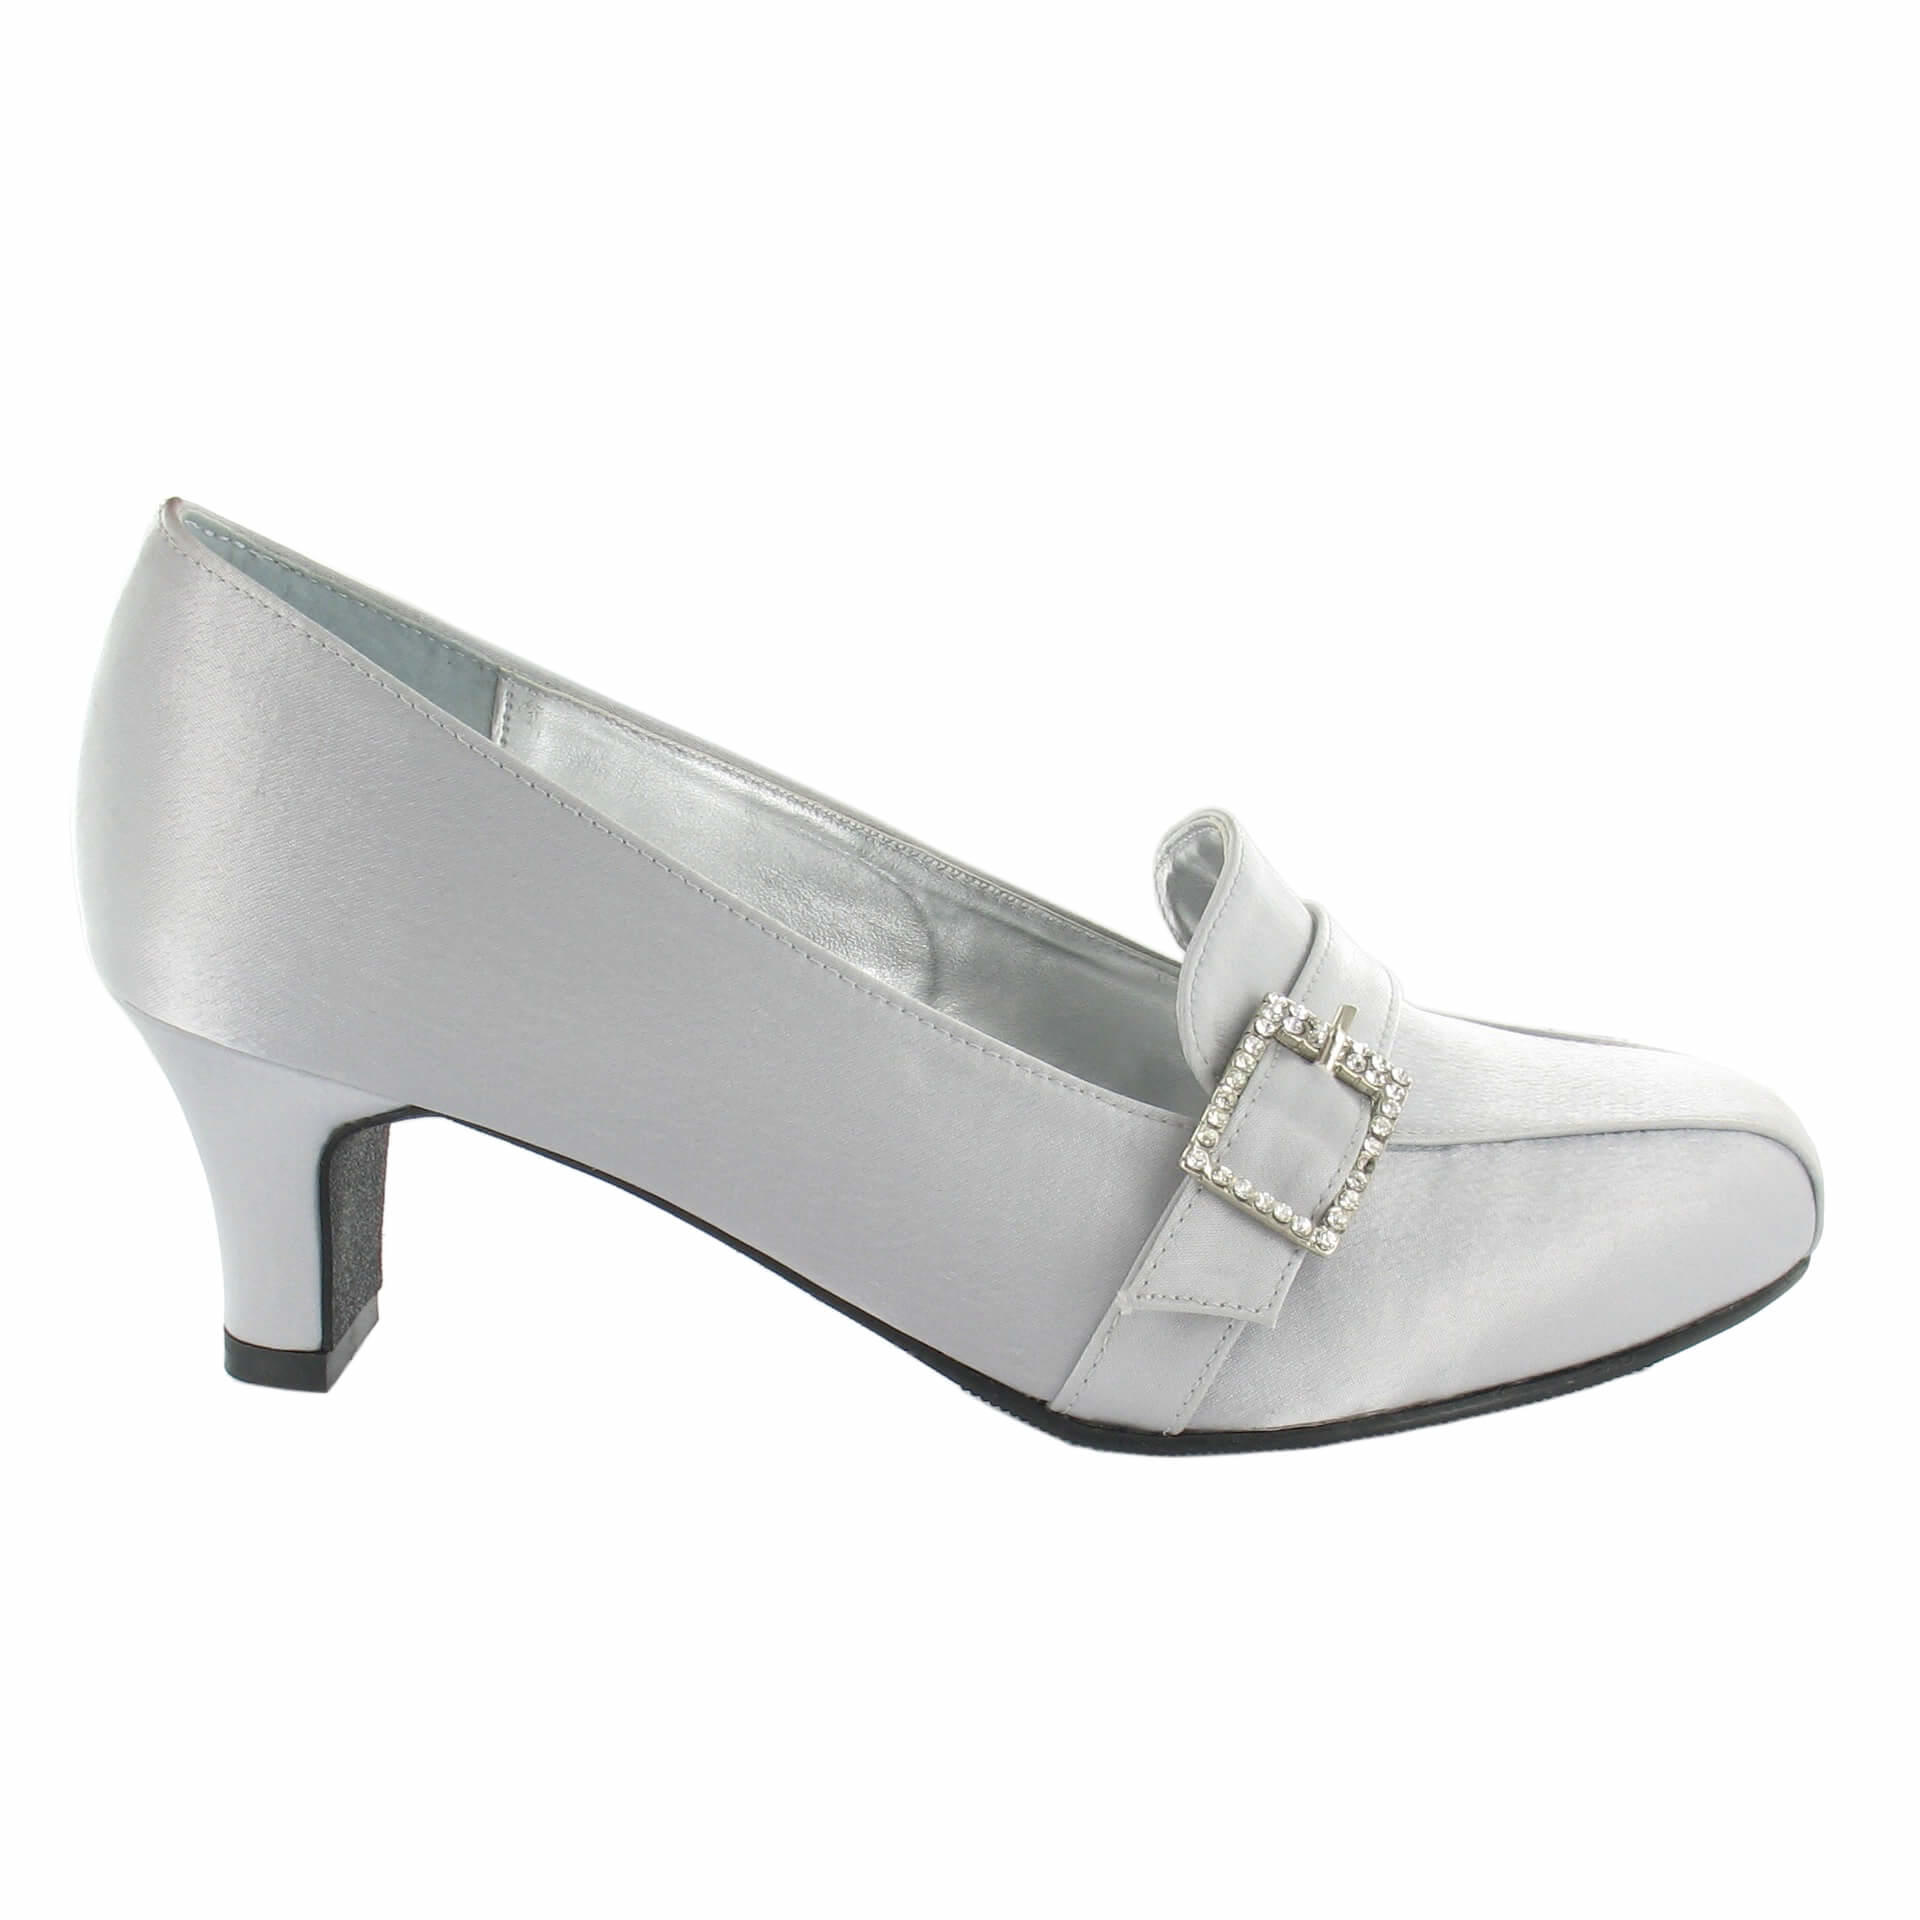 Abbi in Light Grey/Silver